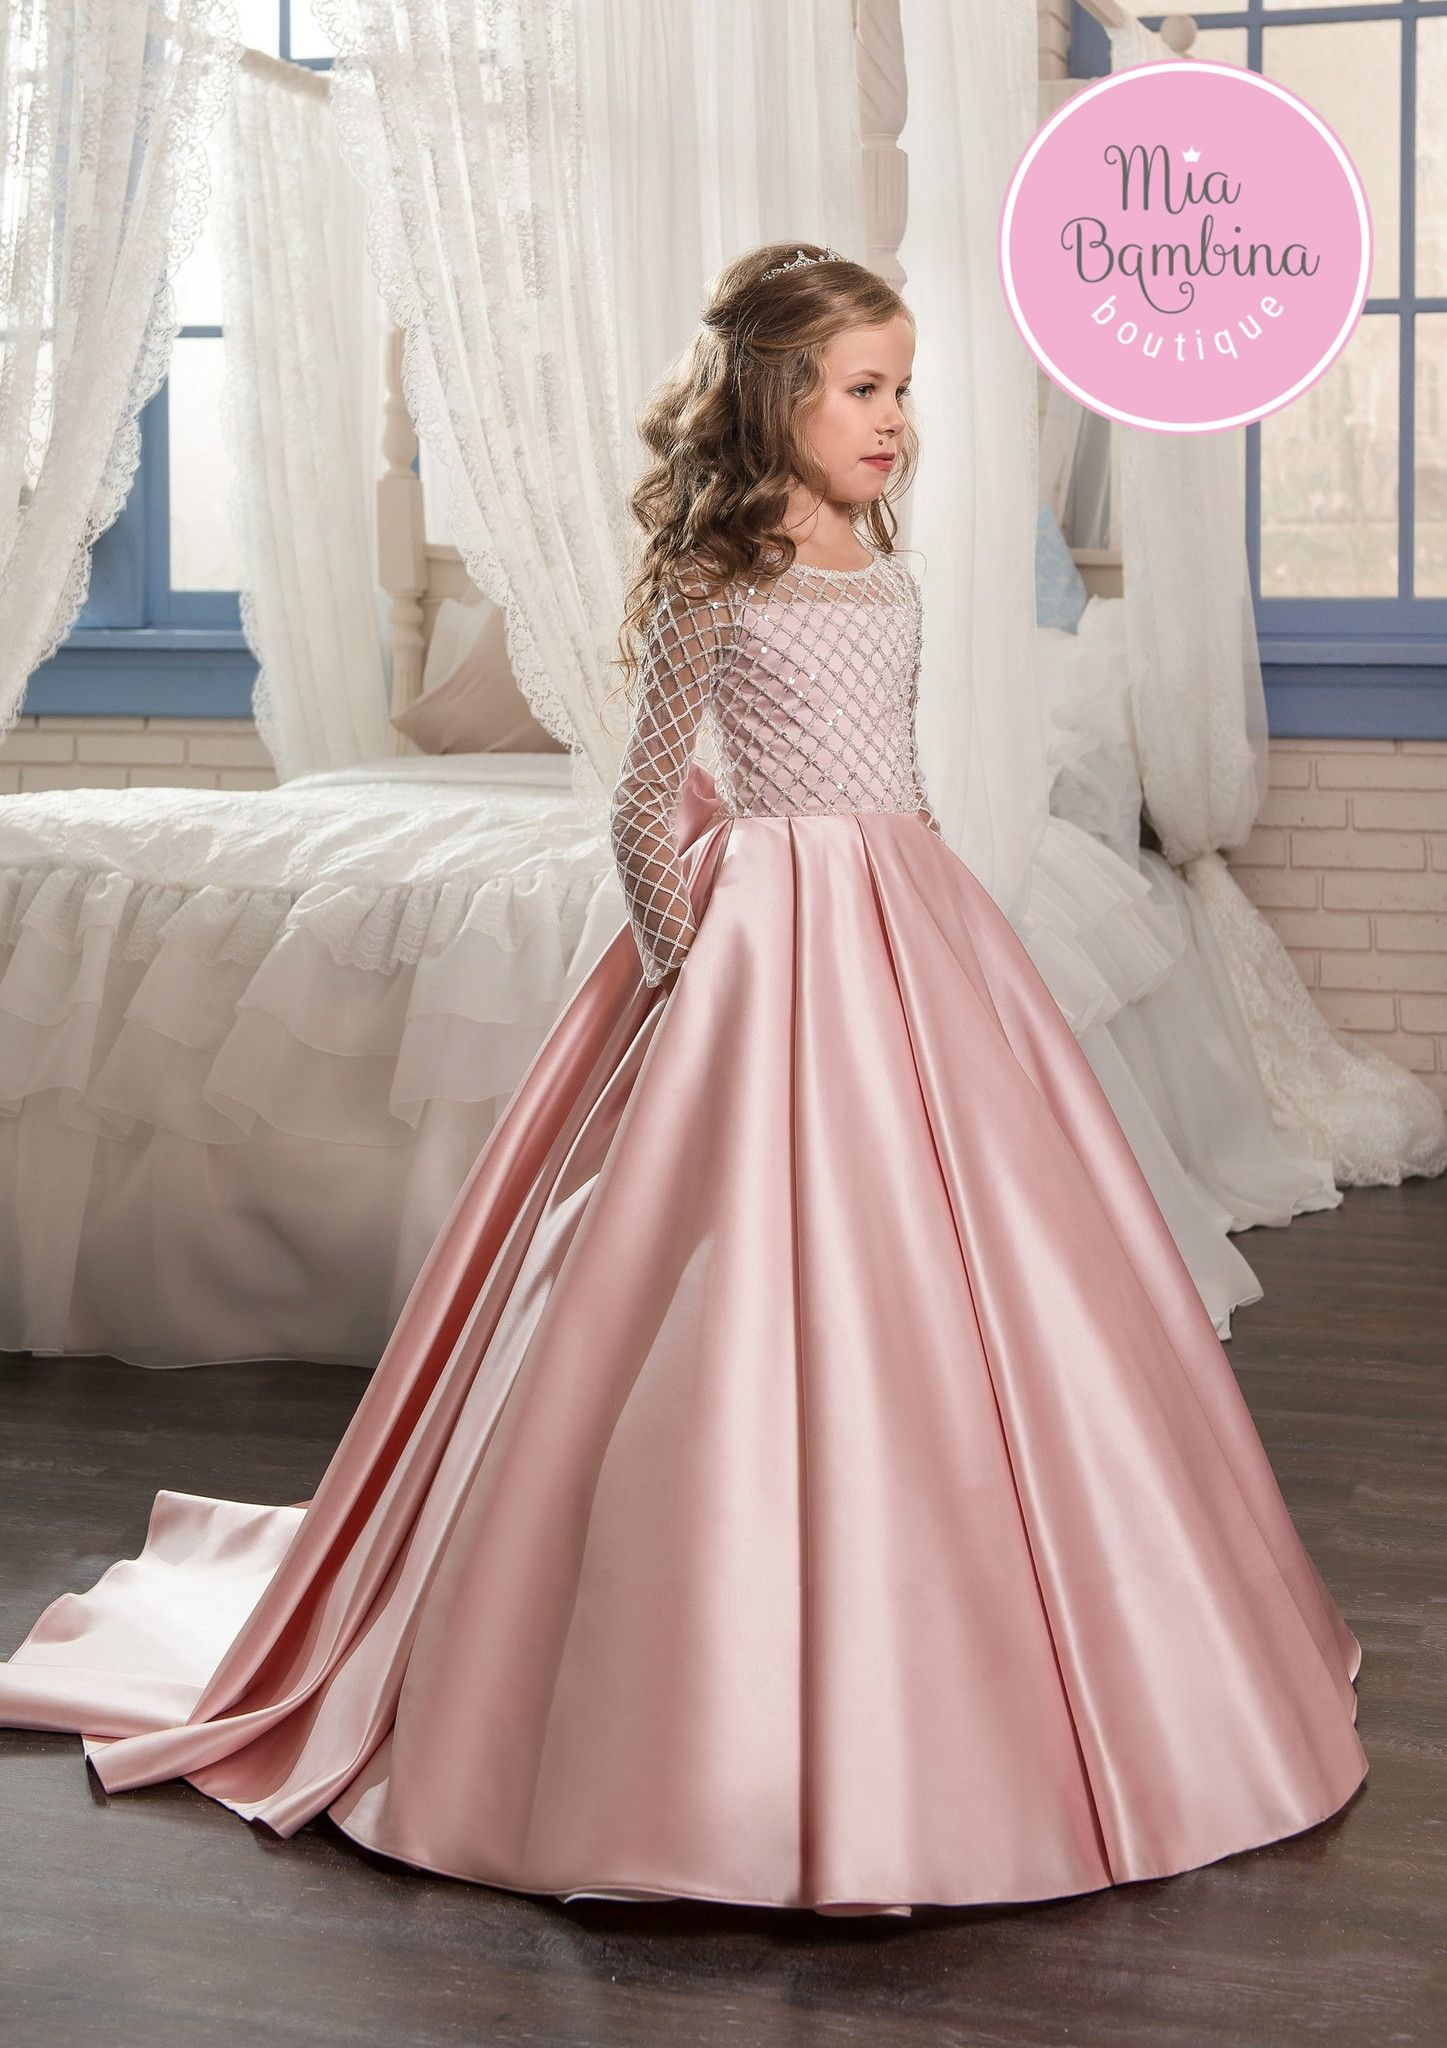 6a4b65a4c Flower Girl Dresses Shop Toronto Flower Girl Dresses at Girls Dress ...